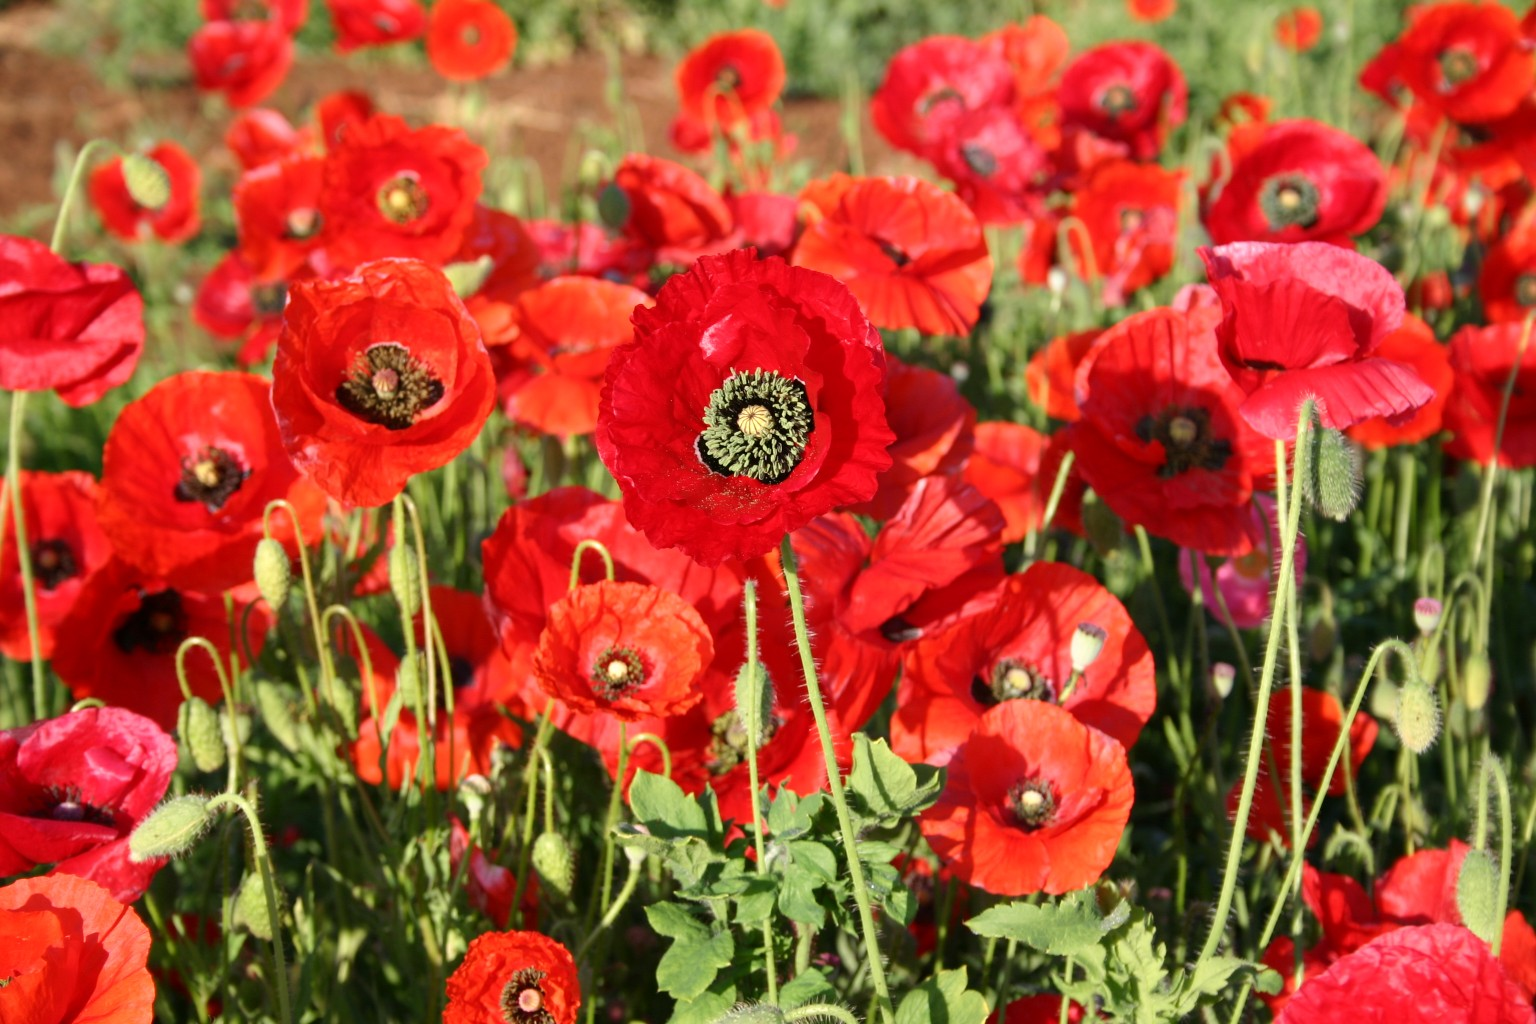 Silver falls seed company red poppy american legion poppy american legion mightylinksfo